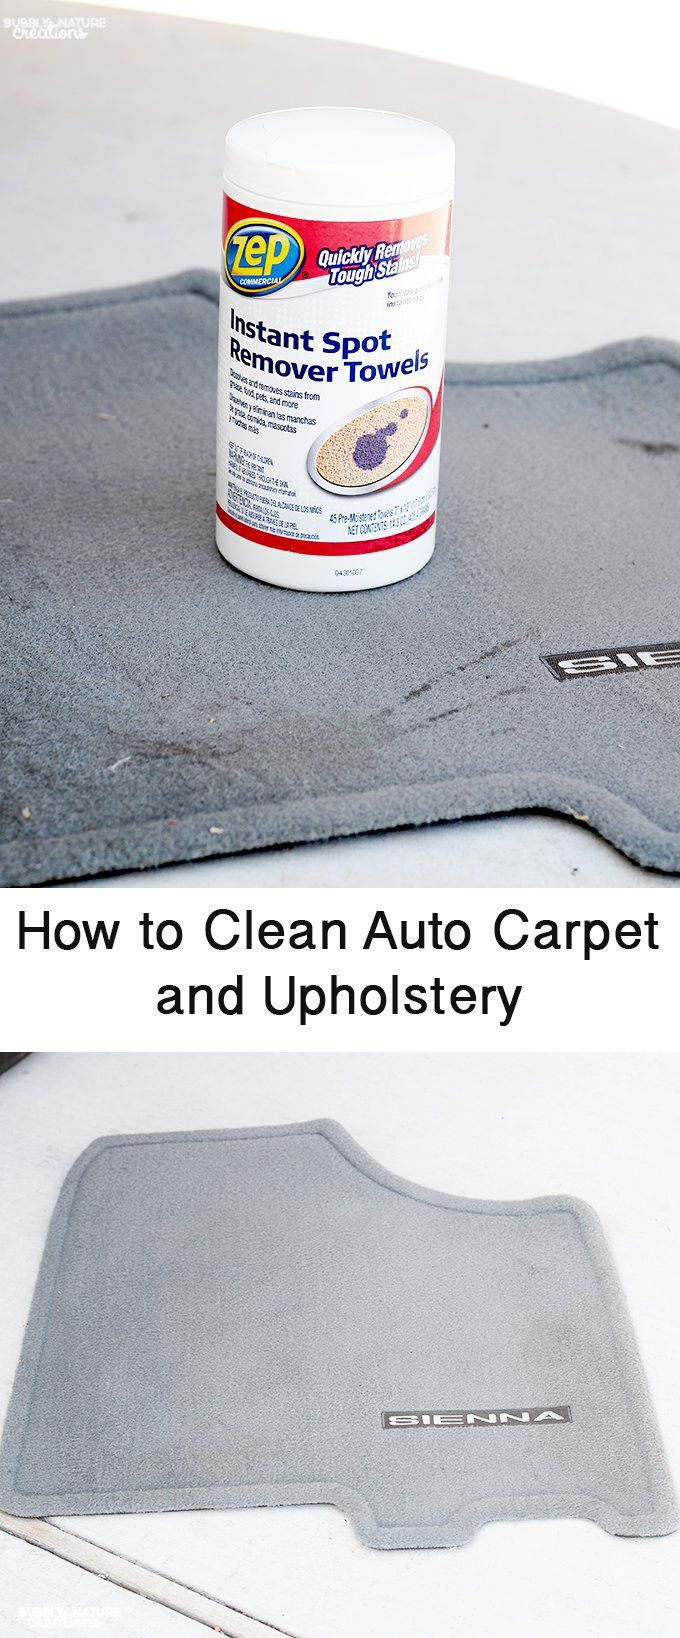 How to Clean Car Upholstery Quickly and Easily! #ZepSocialStars #ad